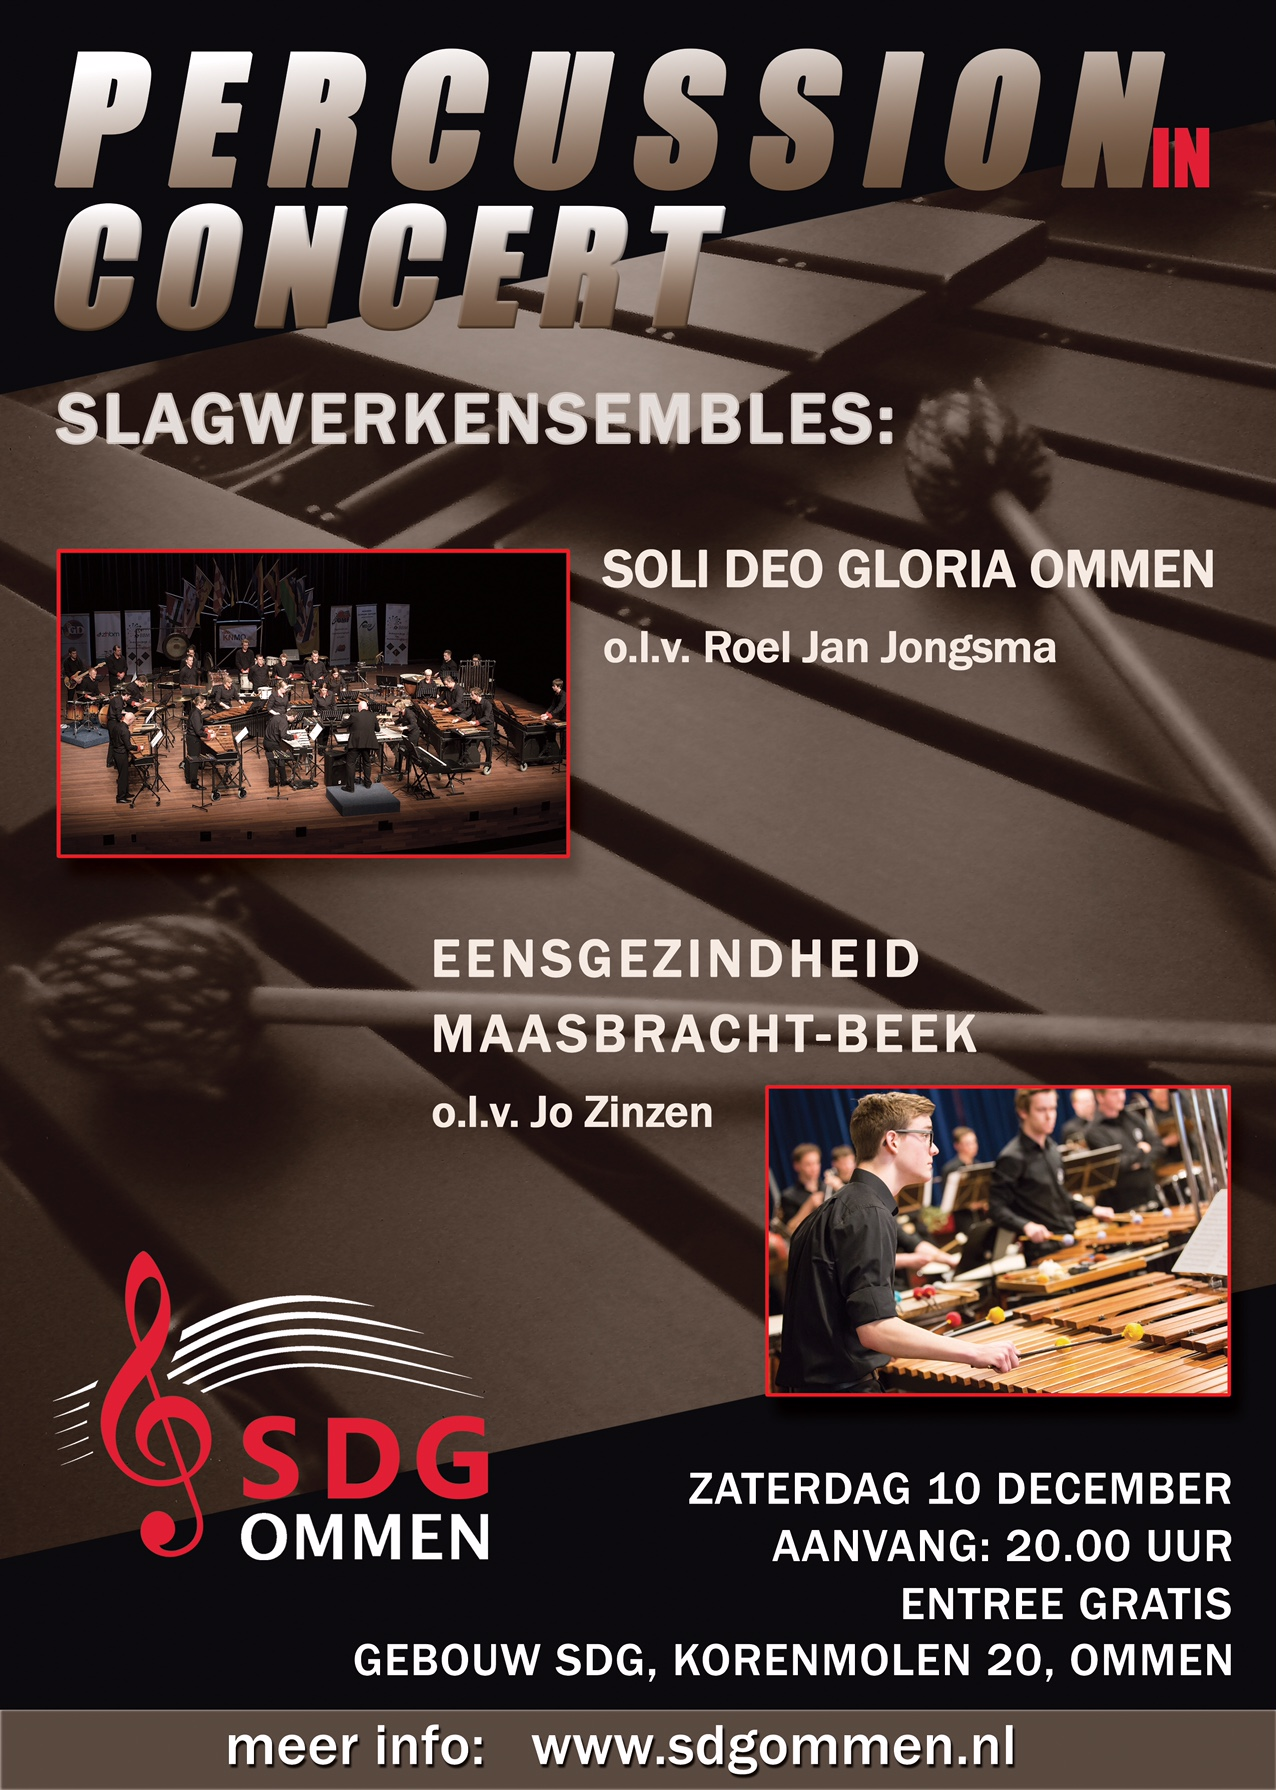 db Poster Percussion in concert